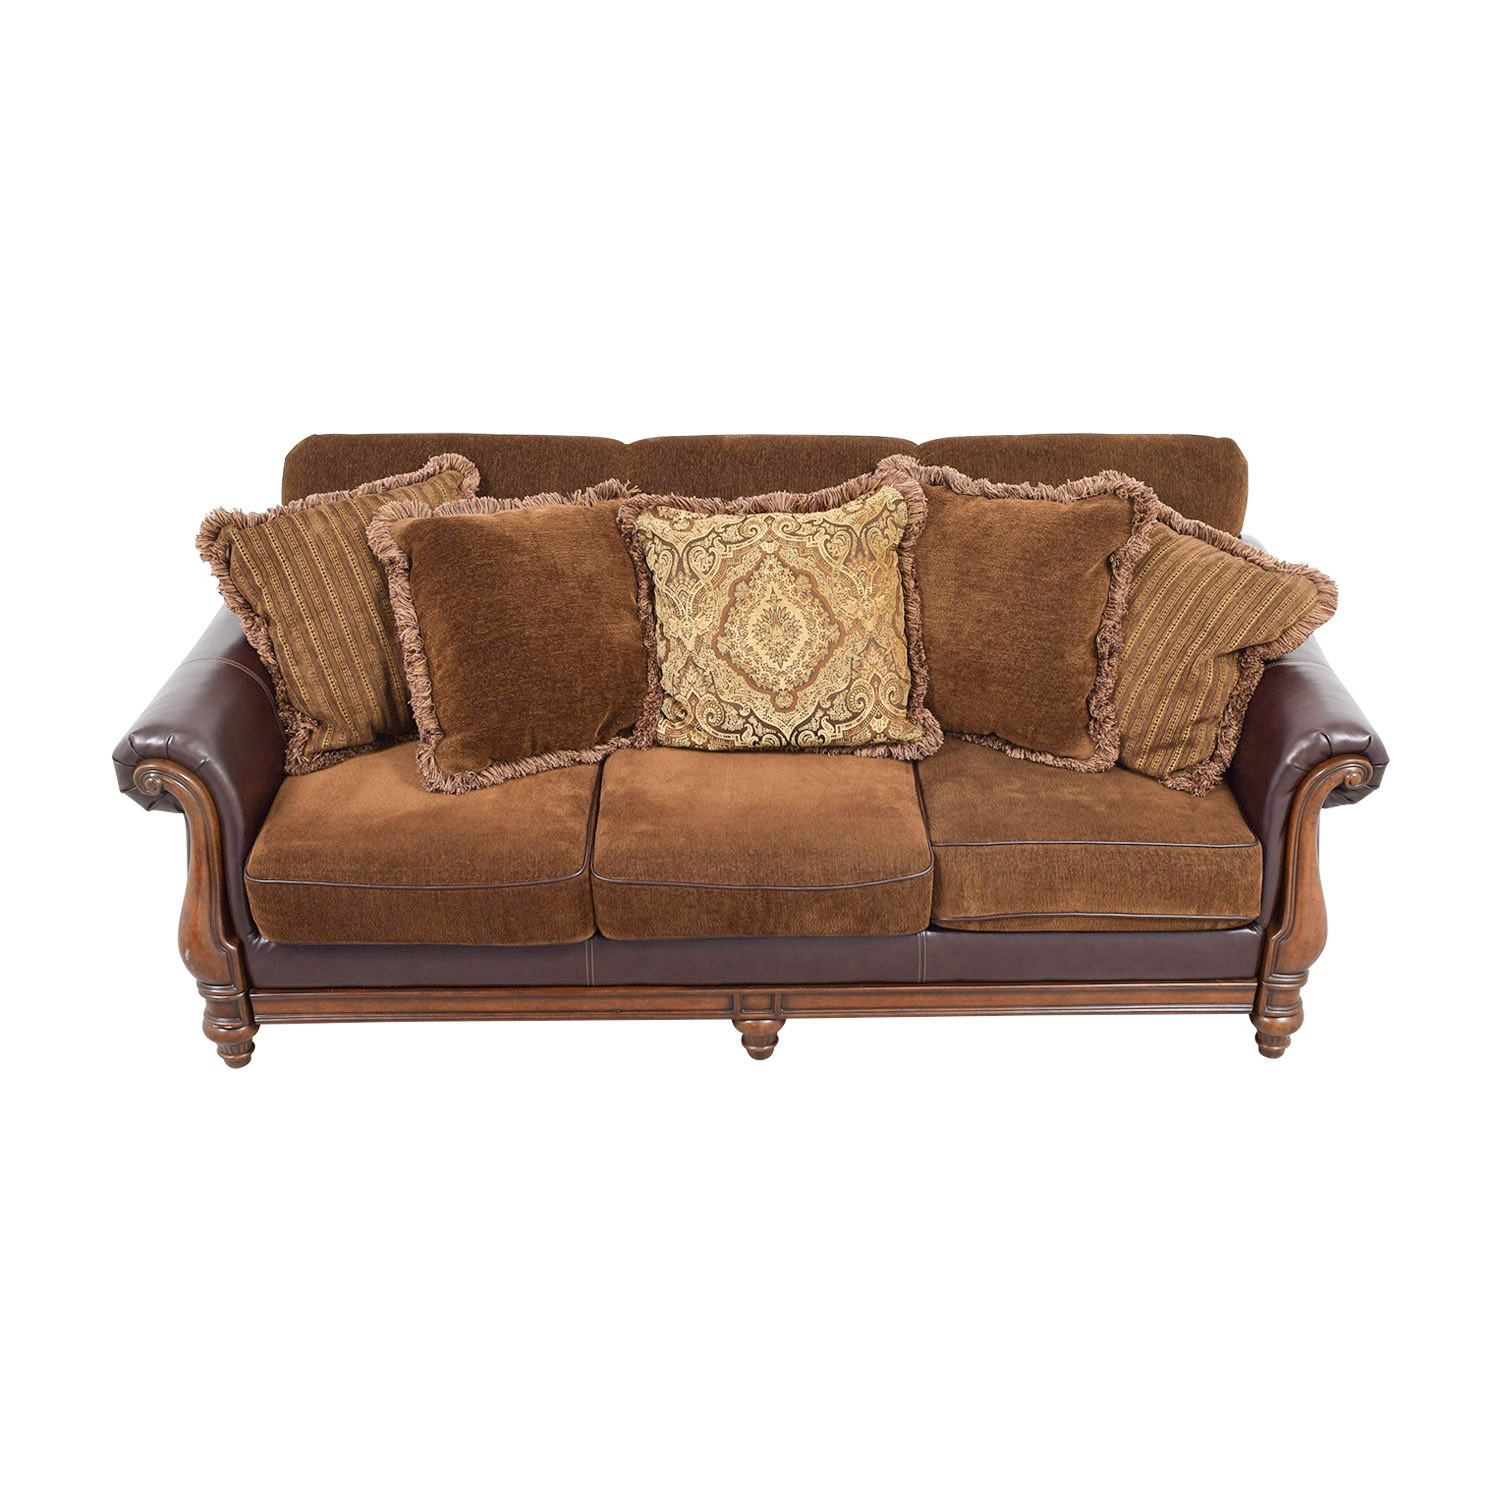 Ashley Furniture Ashley Furniture Brown Mixed Fabric Deep Seated Sofa Brown/tan